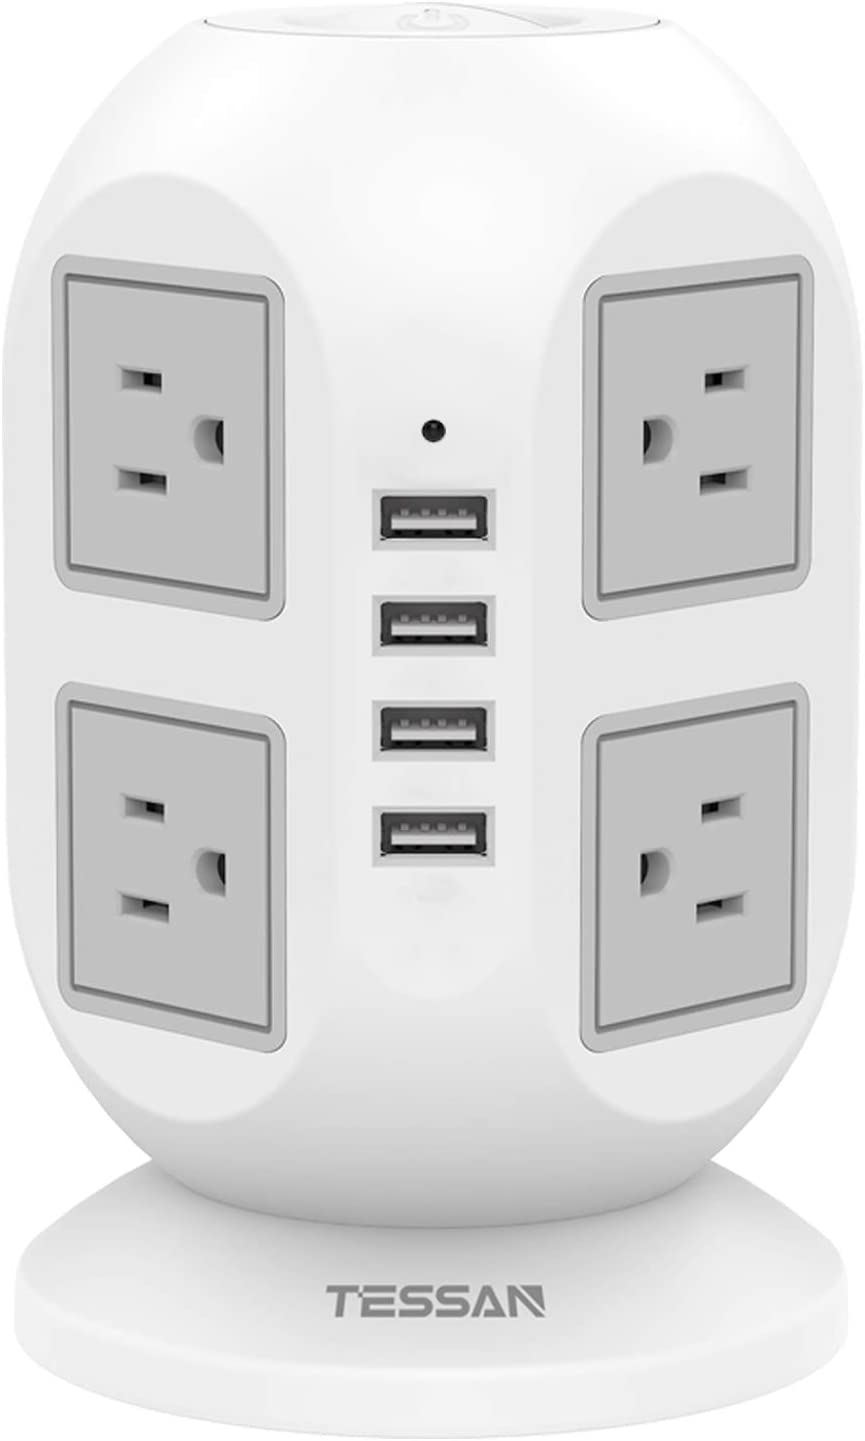 Power Strip Tower TESSAN Surge Protector 8 AC Outlets with 4 USB Ports Charging Station Long Extension Cord 10 Feet, Widely Spaced Multi Outlets, Circuit Breaker Safeguard for Home Office Dorm Room: Home Audio & Theater